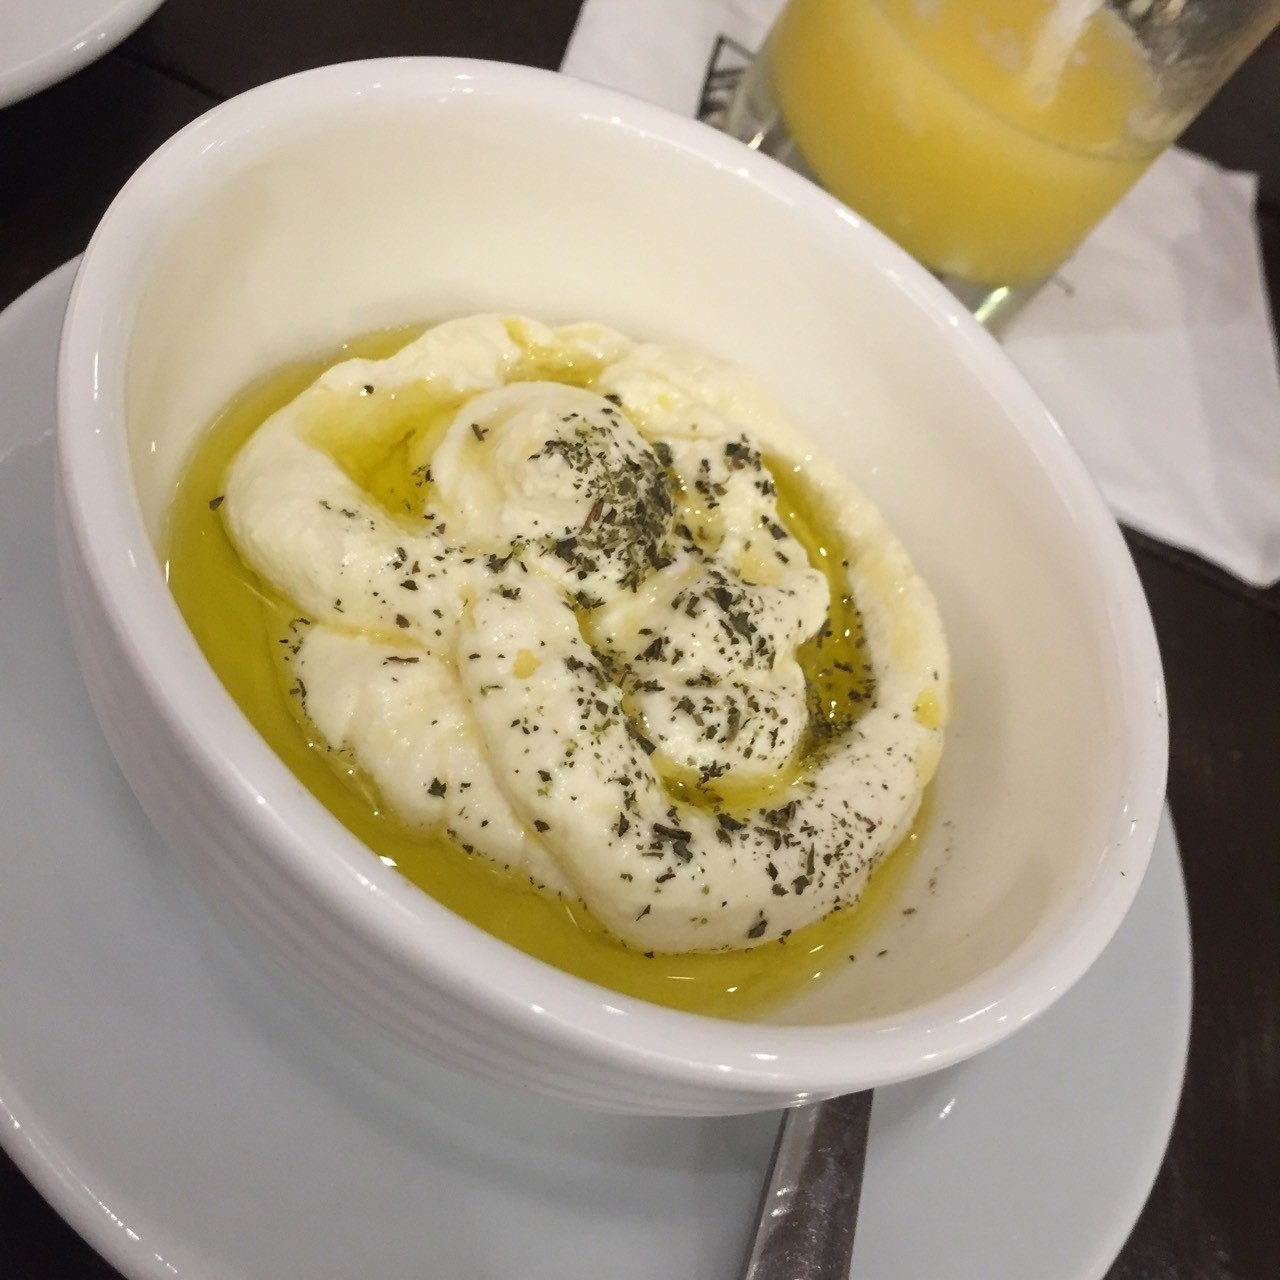 #Labneh - a yoghurt dip with a soft cheese texture. Mom loves this with pita bread and sips of her mango shake.